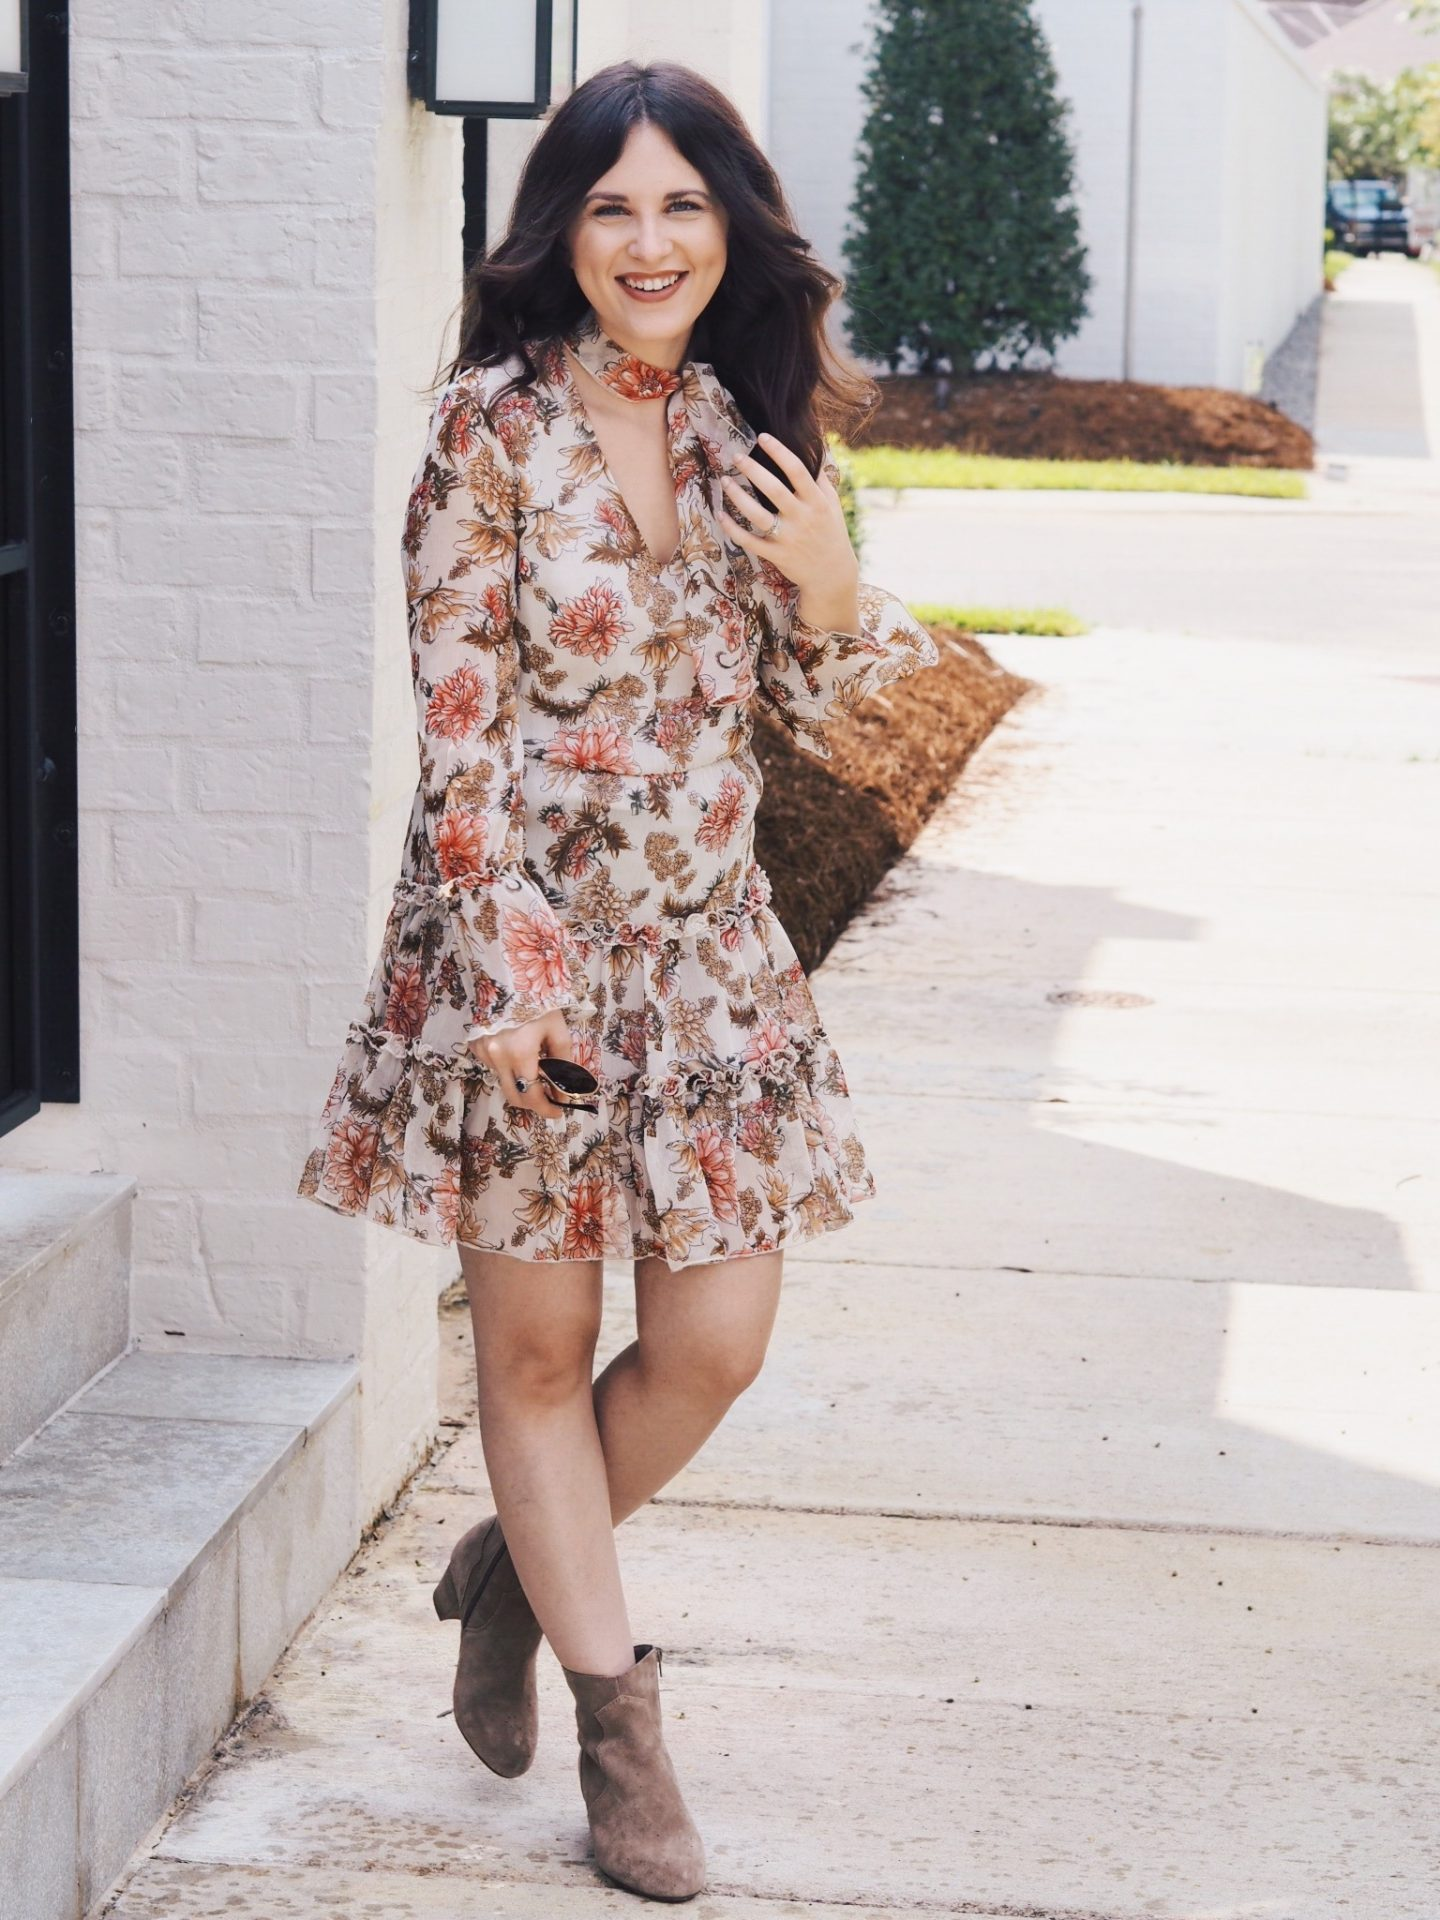 floral dress. mini dress. sole society. boots. booties. fall look. fall style. fall favorites